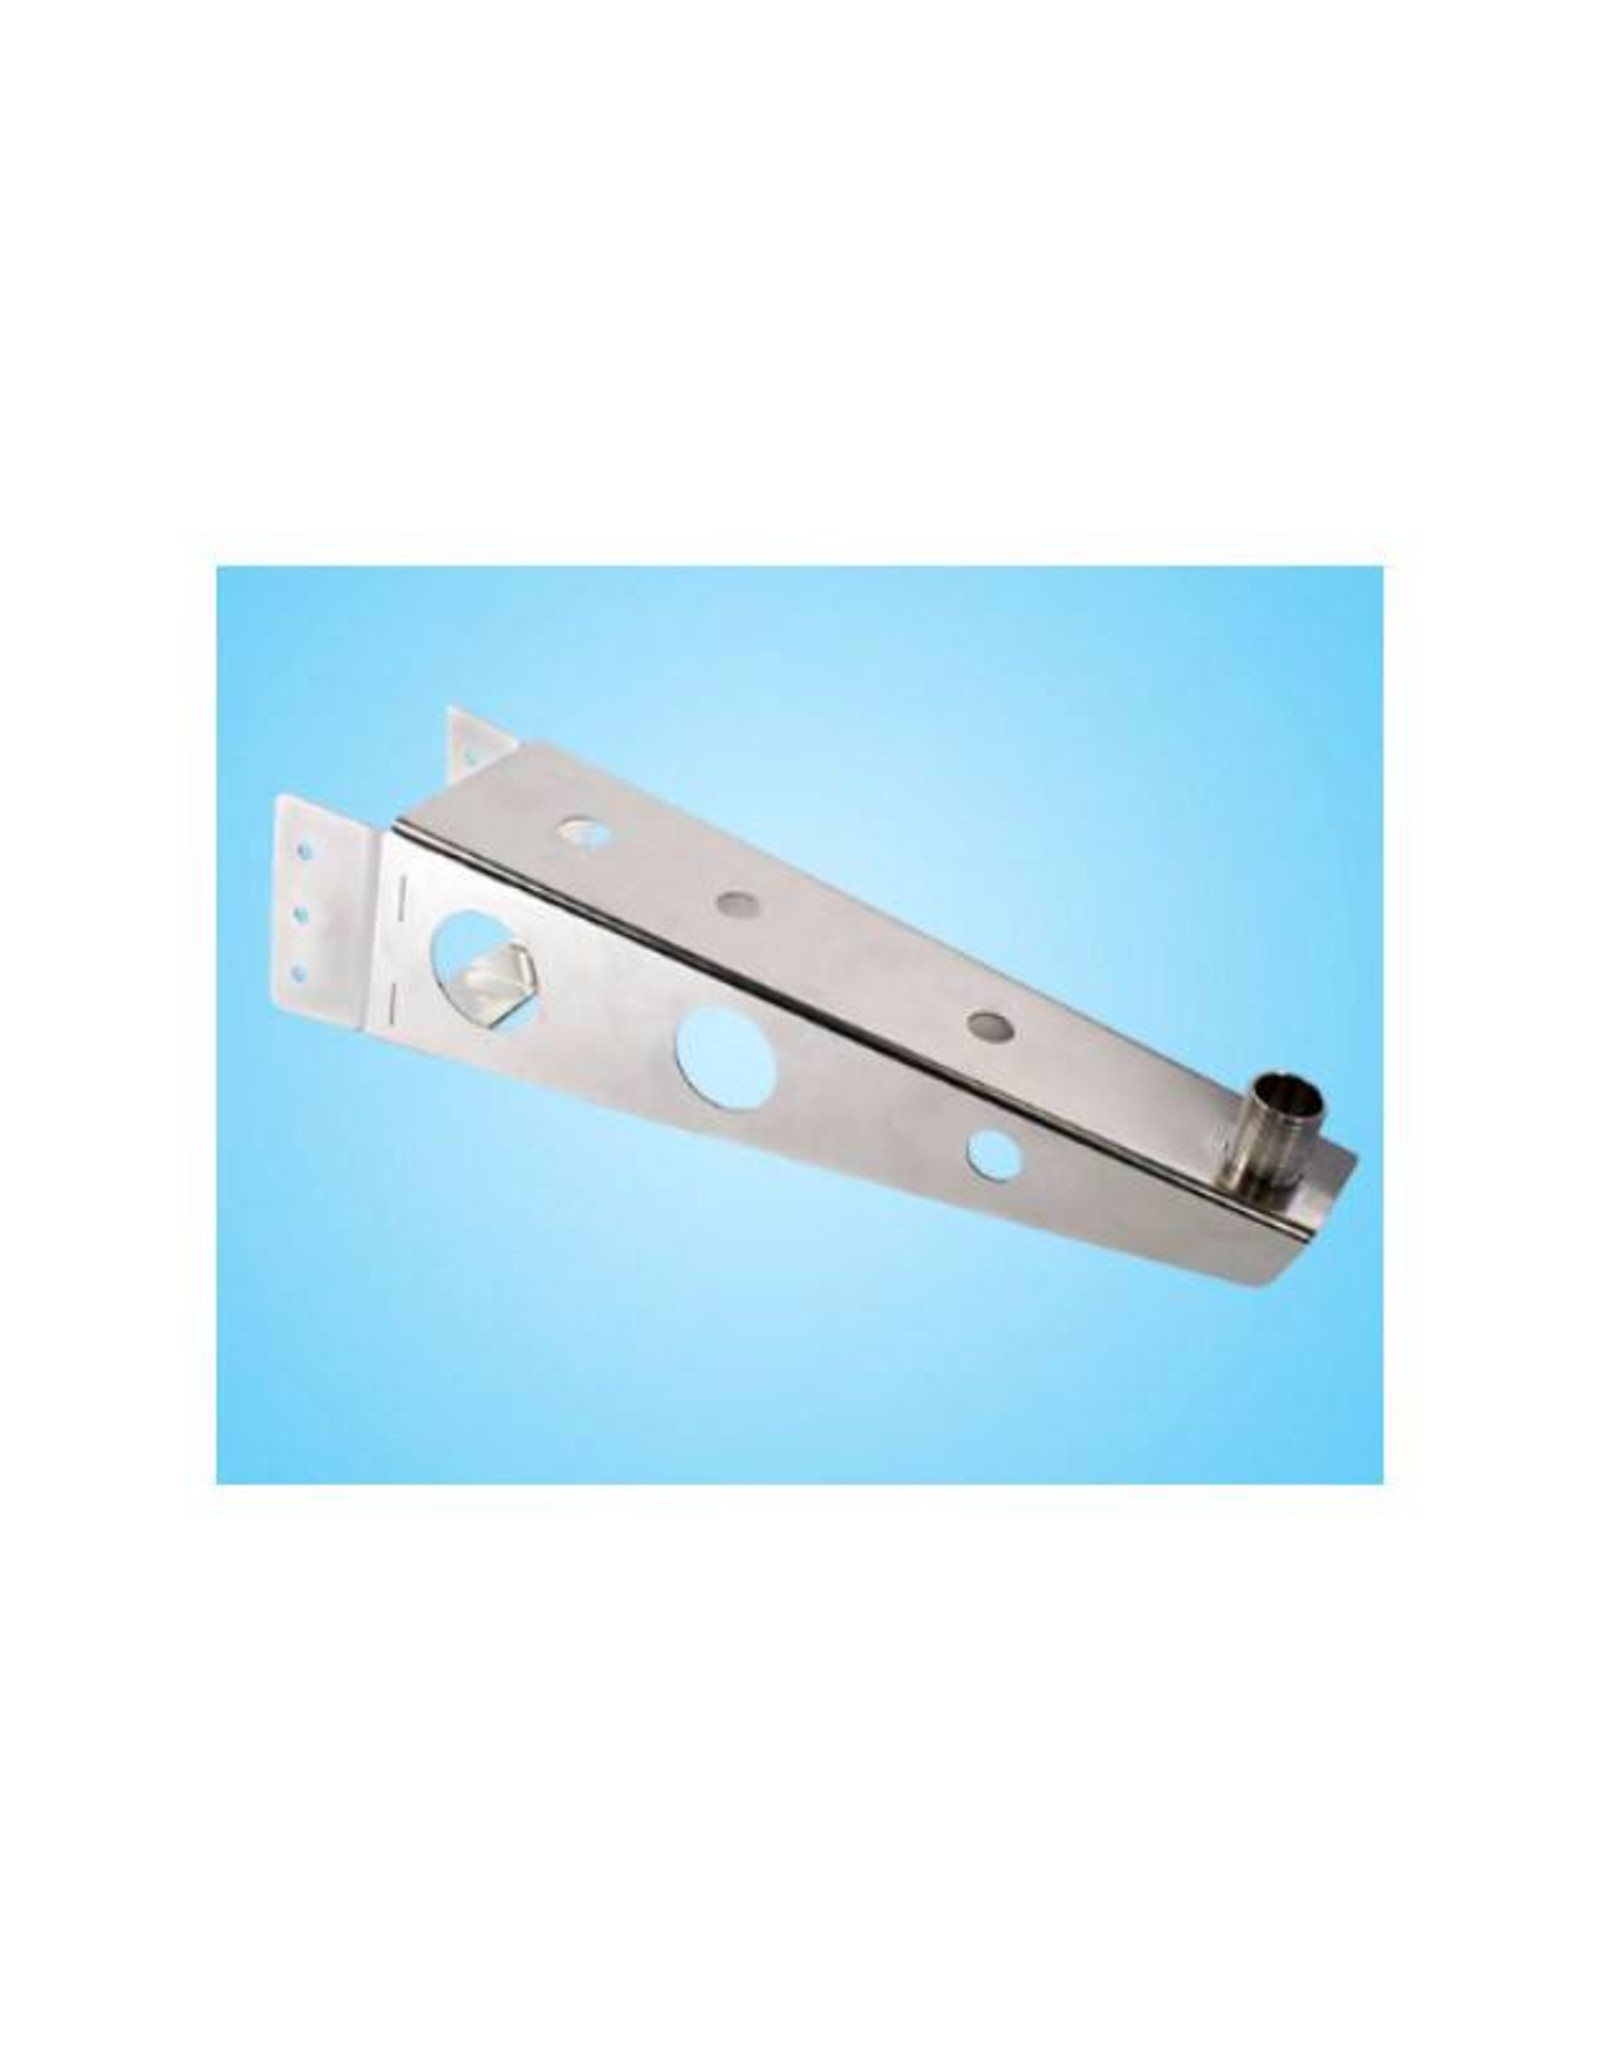 STAINLESS STEEL MAST MOUNT 4366-R